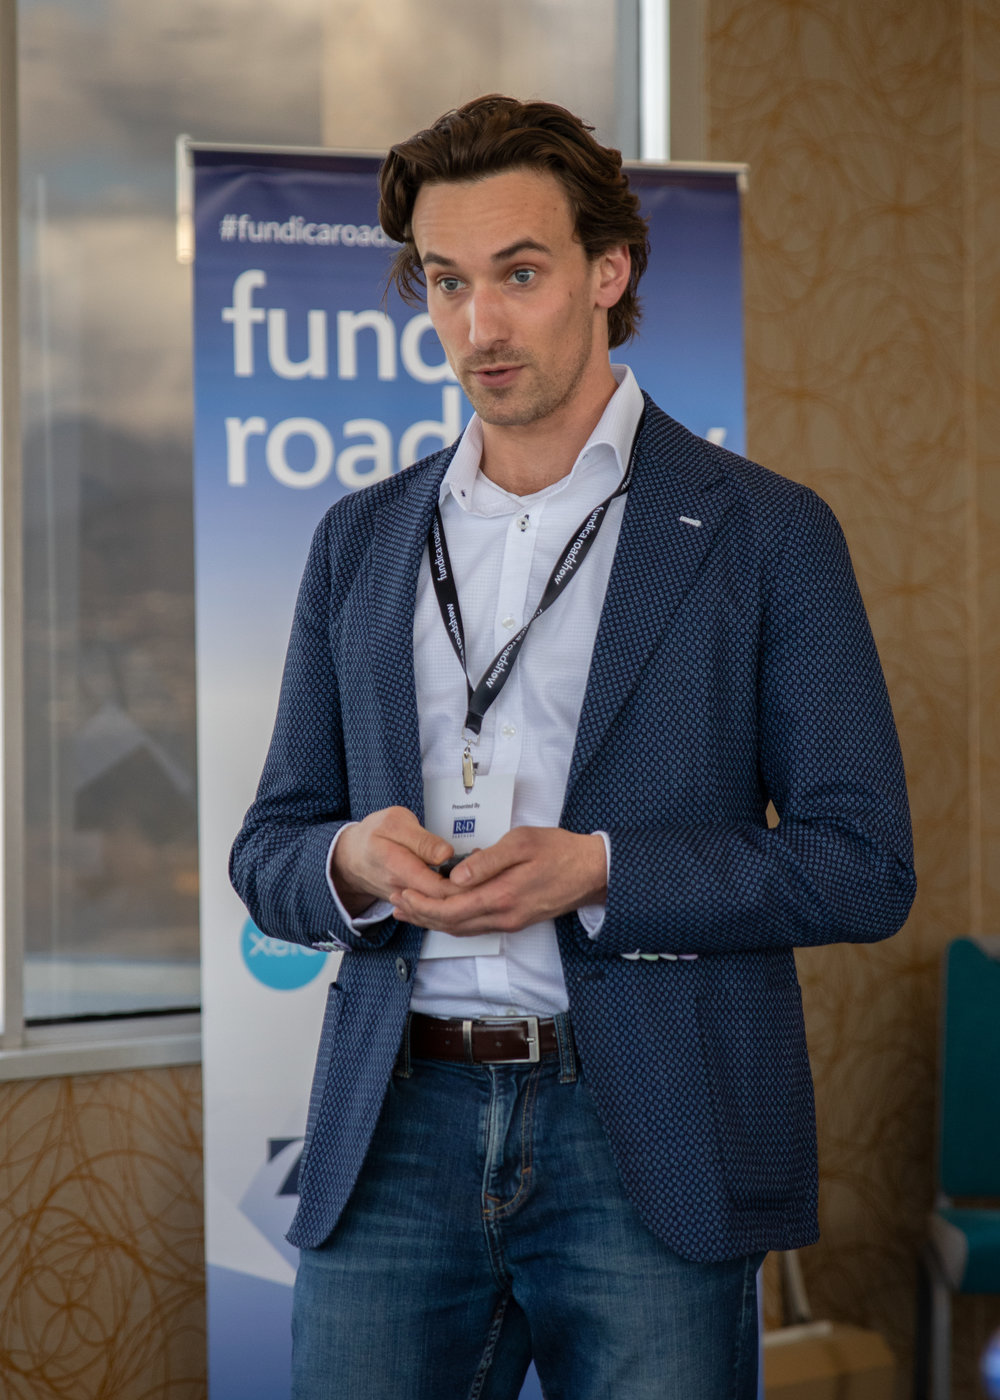 Pierre Wijdenes pitching Neuraura to a panel of investors at the 2019 Fundica Roadshow.